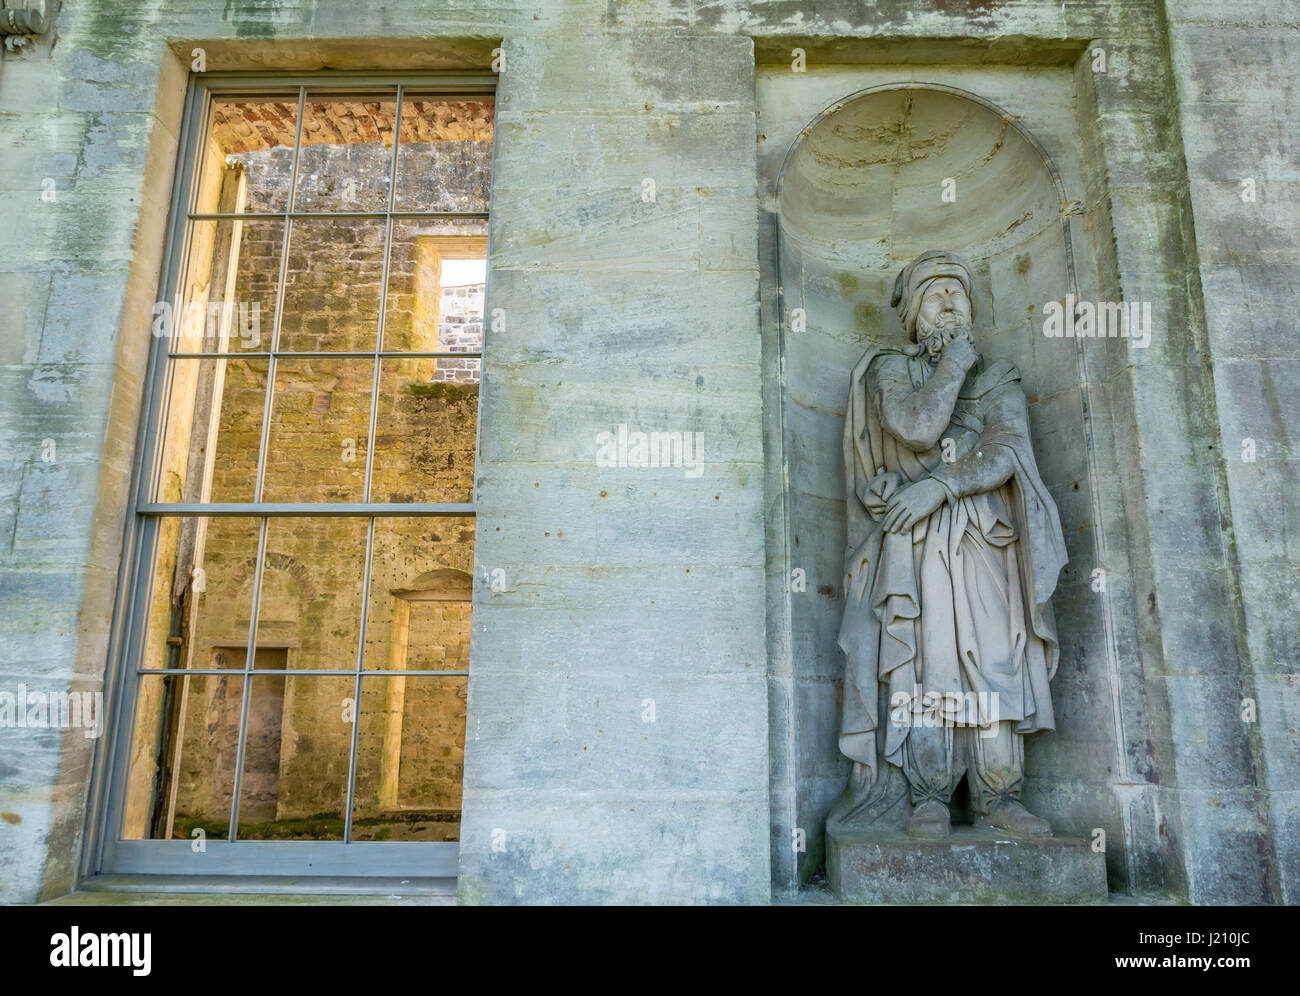 Close up stone Druid statue by Willie Jeans and sash and case window, Palladian mansion, Penicuik House, Midlothian, - Stock Image